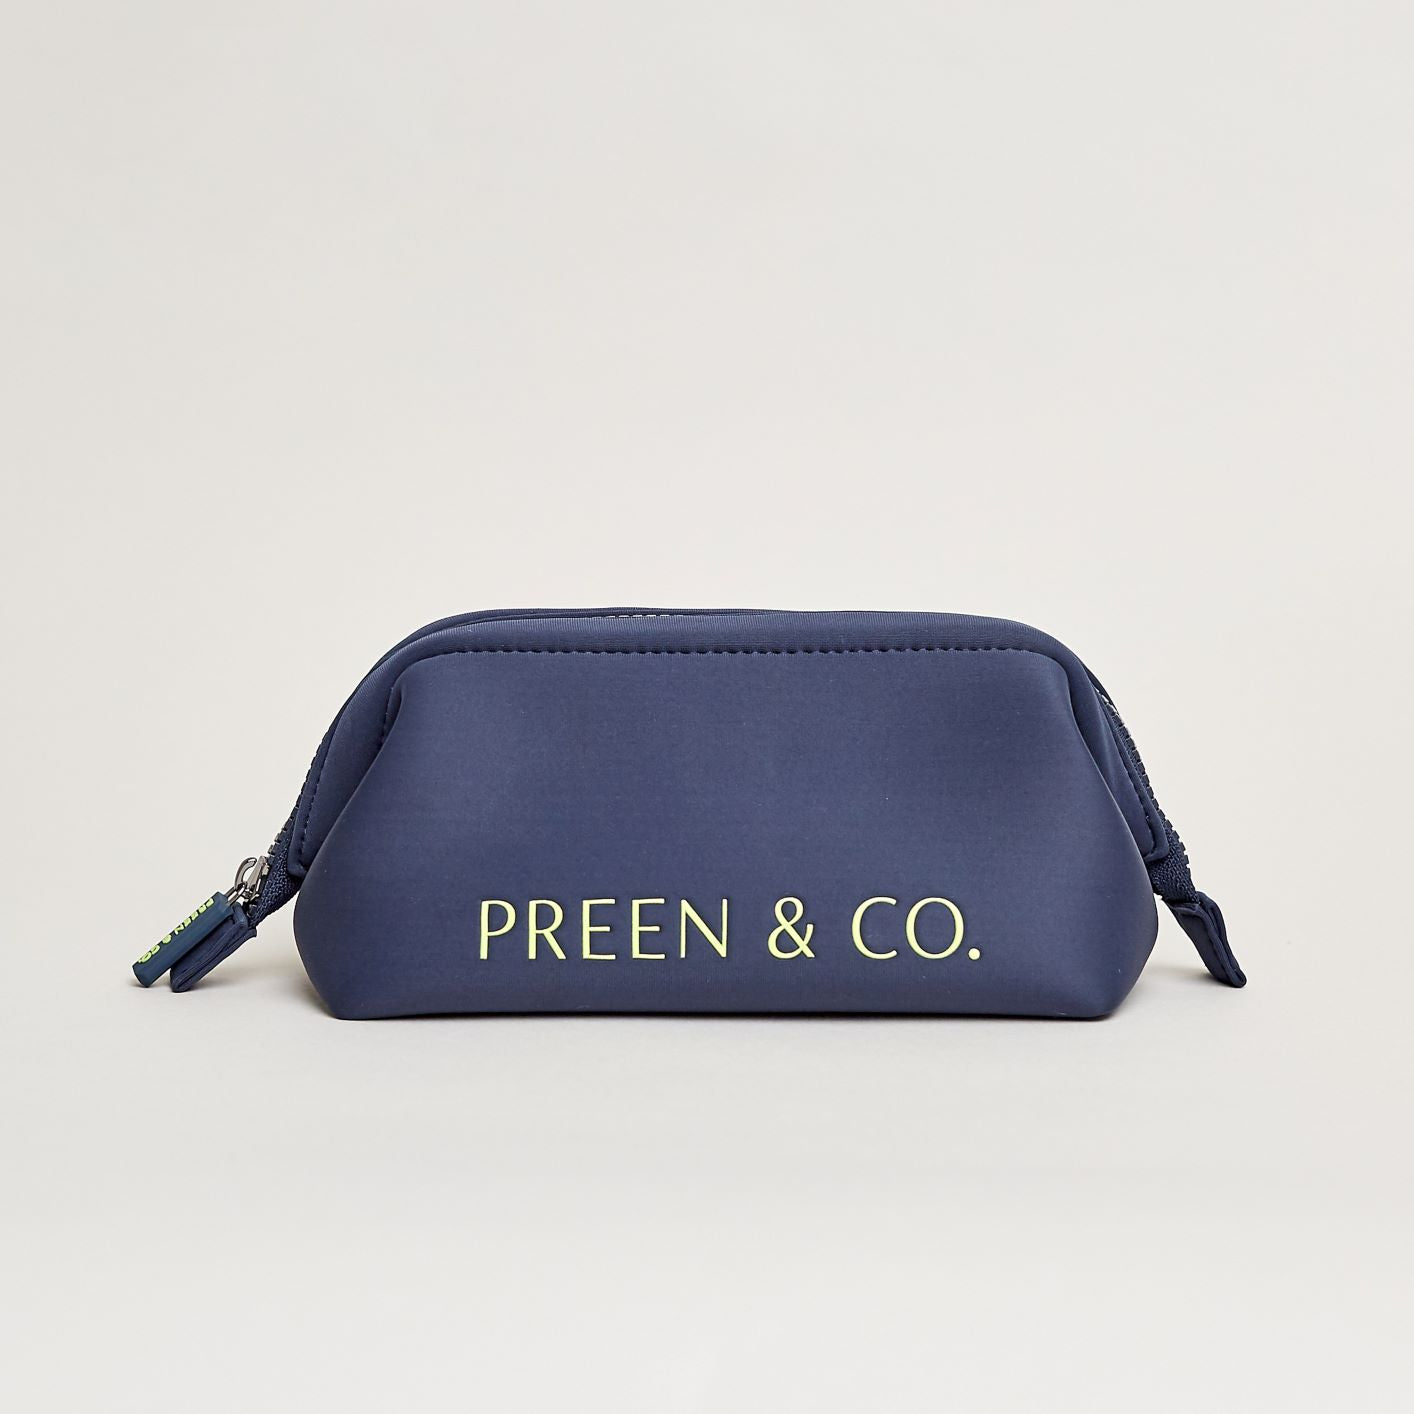 cosmetic case heat resistant protects from melting